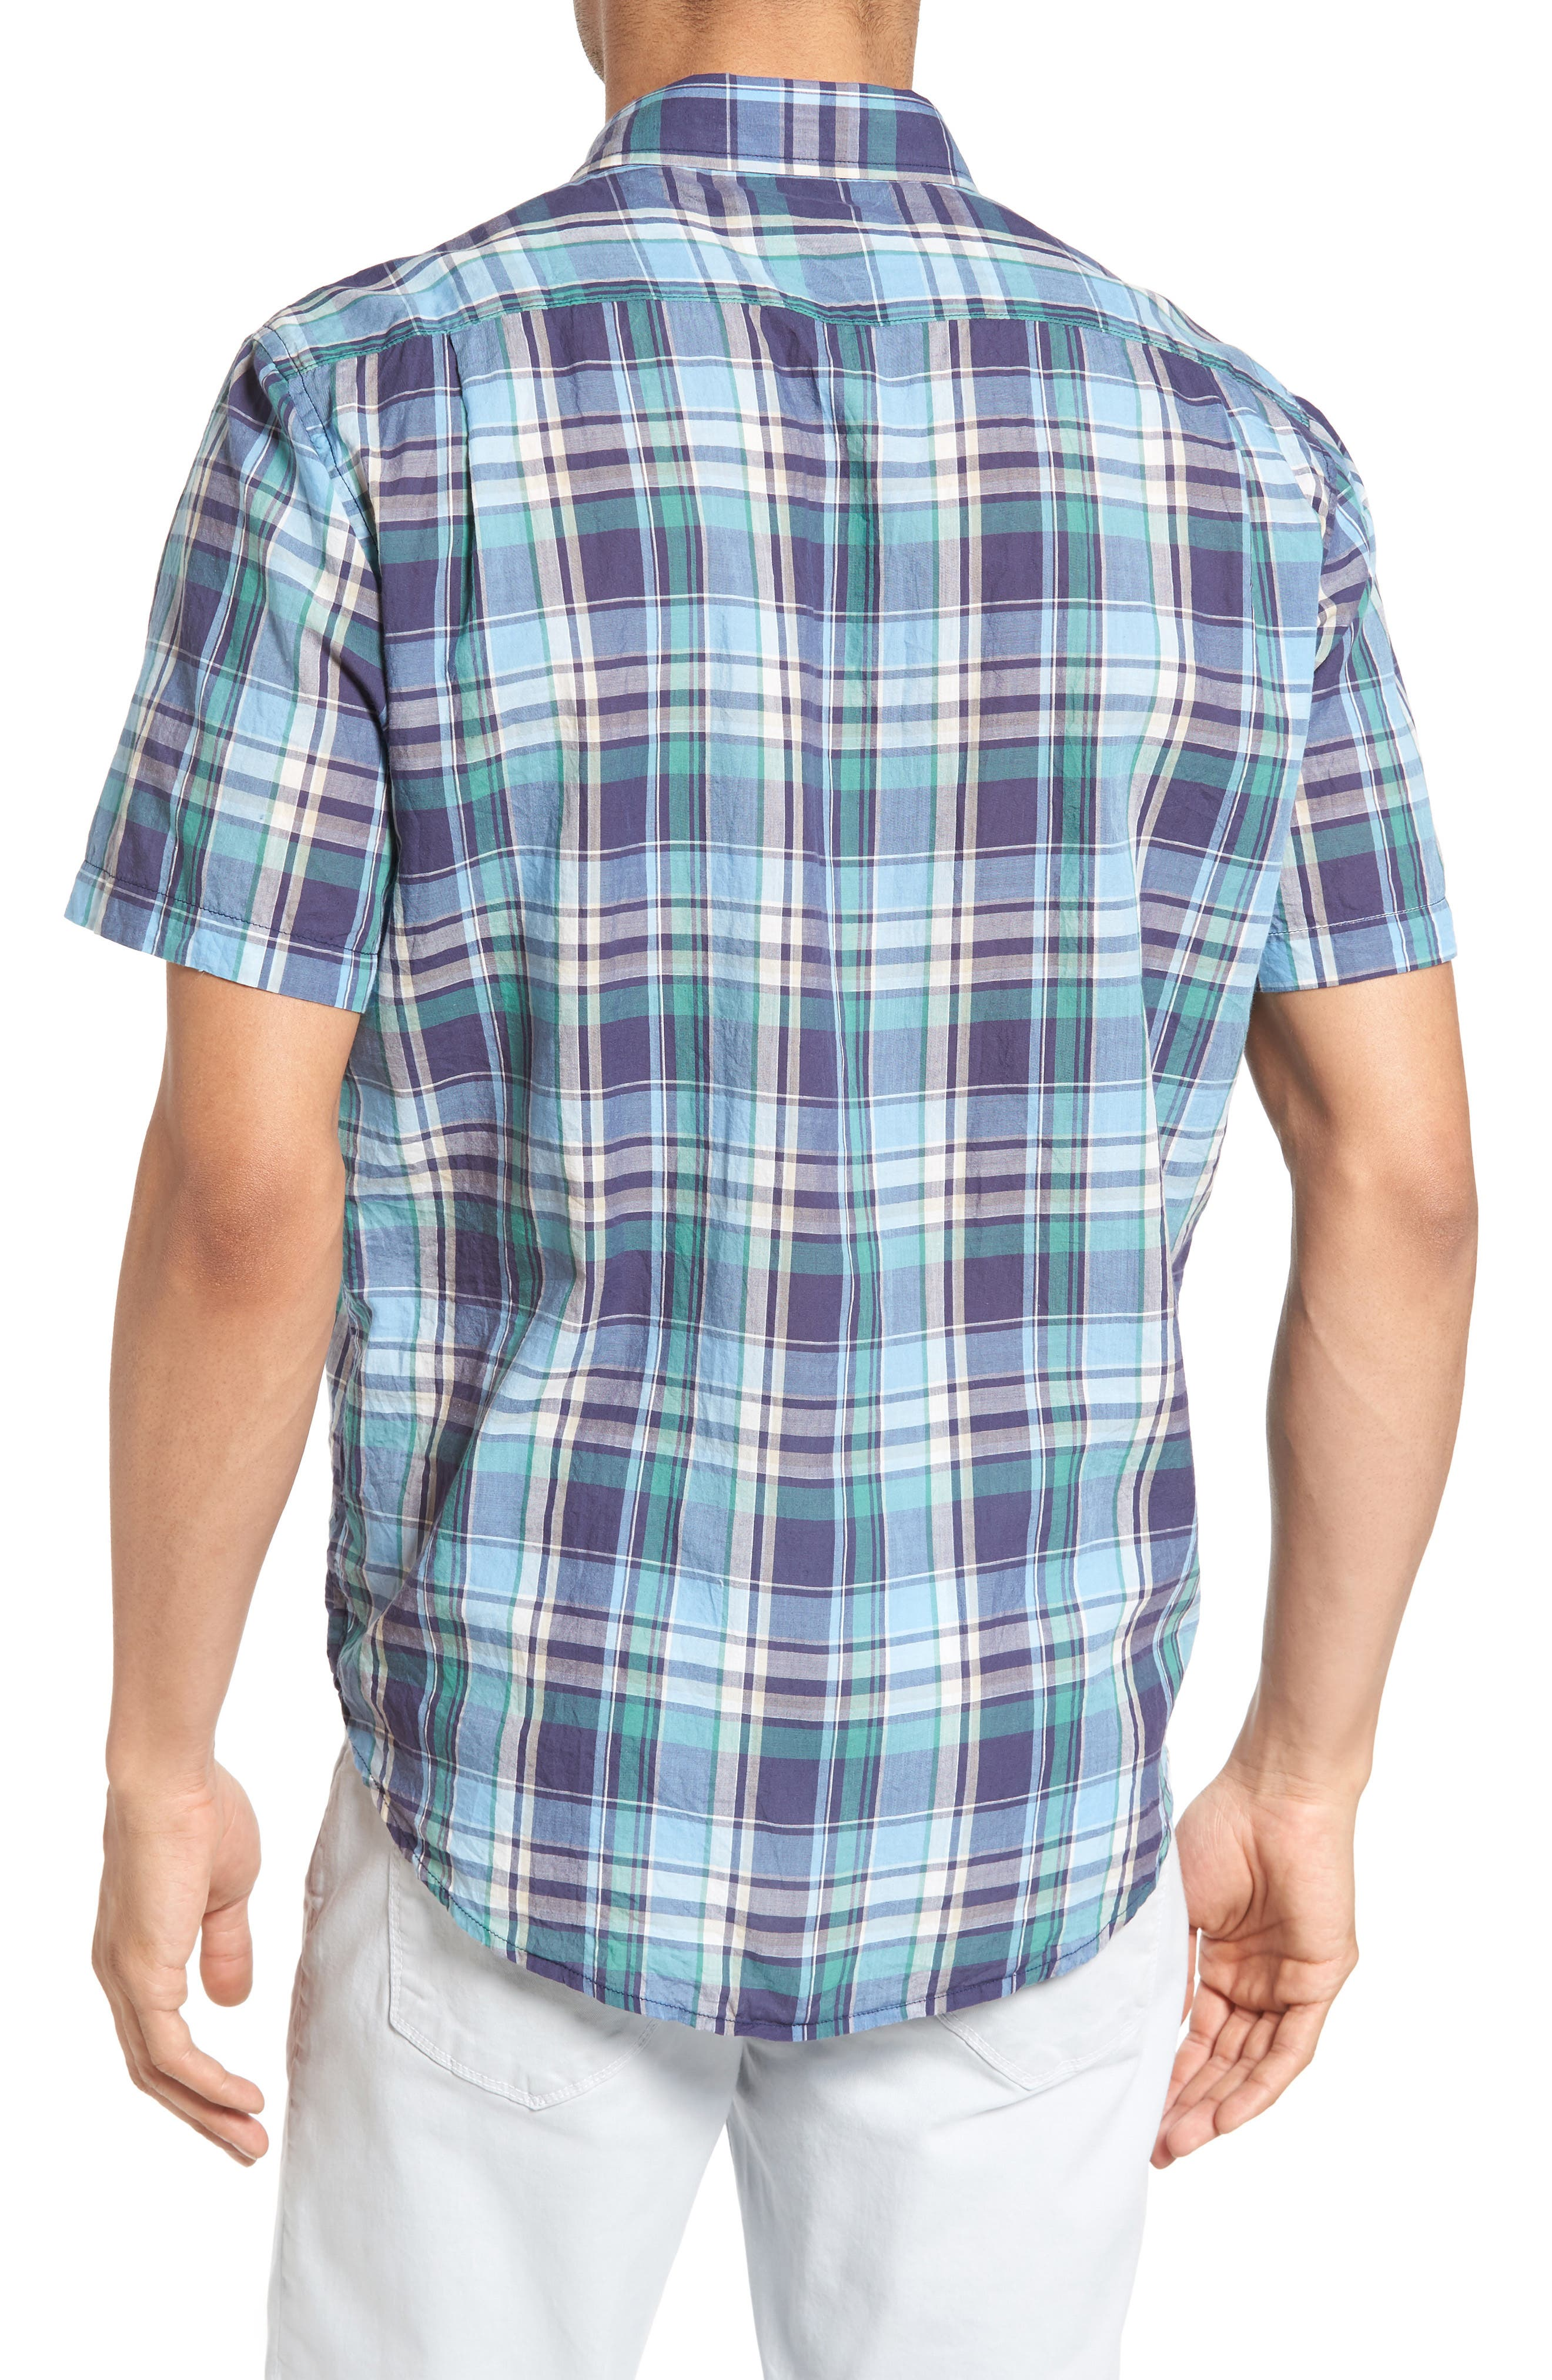 Alternate Image 2  - Tailor Vintage Crinkle Plaid Sport Shirt